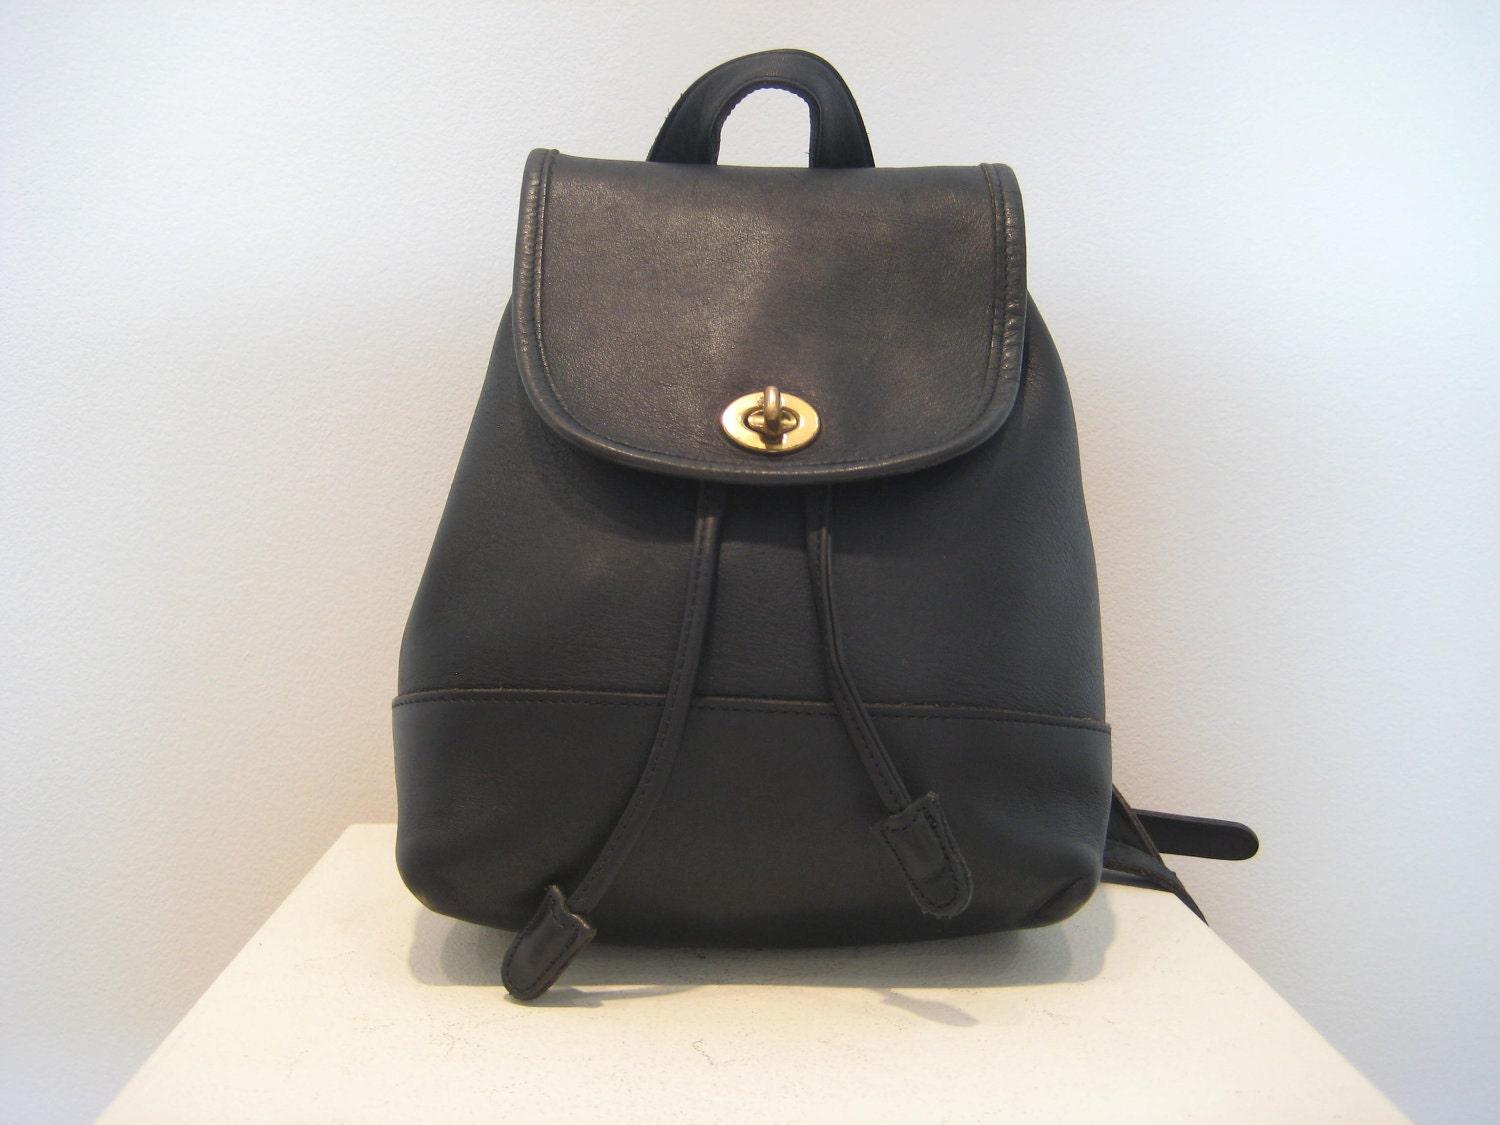 Shop Black Backpack Handbags at eBags - experts in bags and accessories since We offer easy returns, expert advice, and millions of customer reviews.